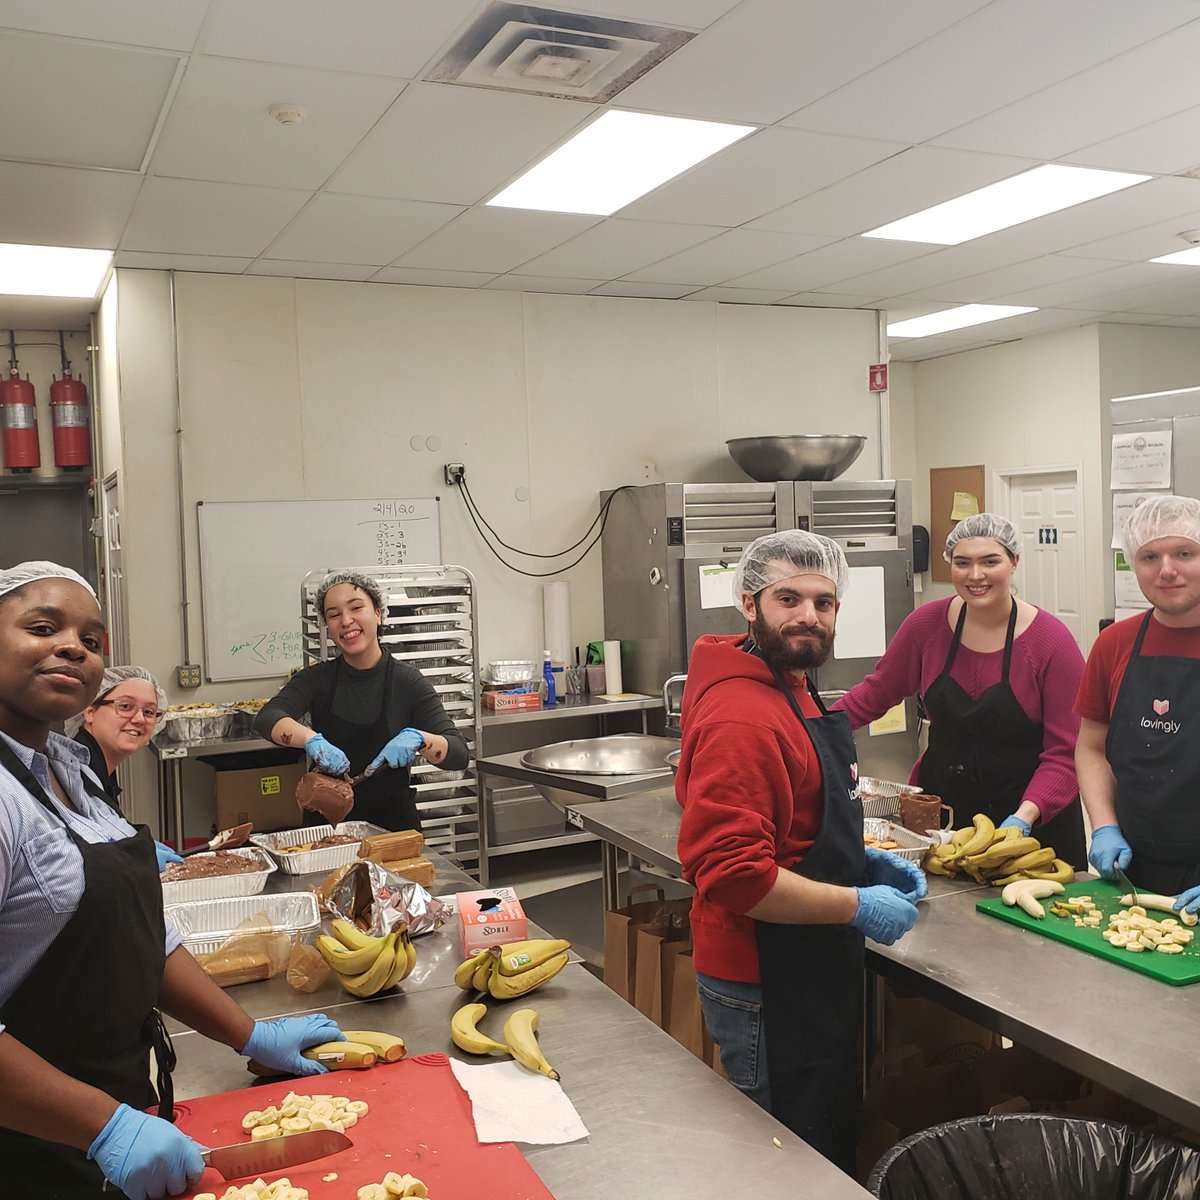 On Feb. 3, students from the Student Government Community Service Committee volunteered with @SparrowsNestHV to prepare desserts for local families with parents or children fighting cancer.